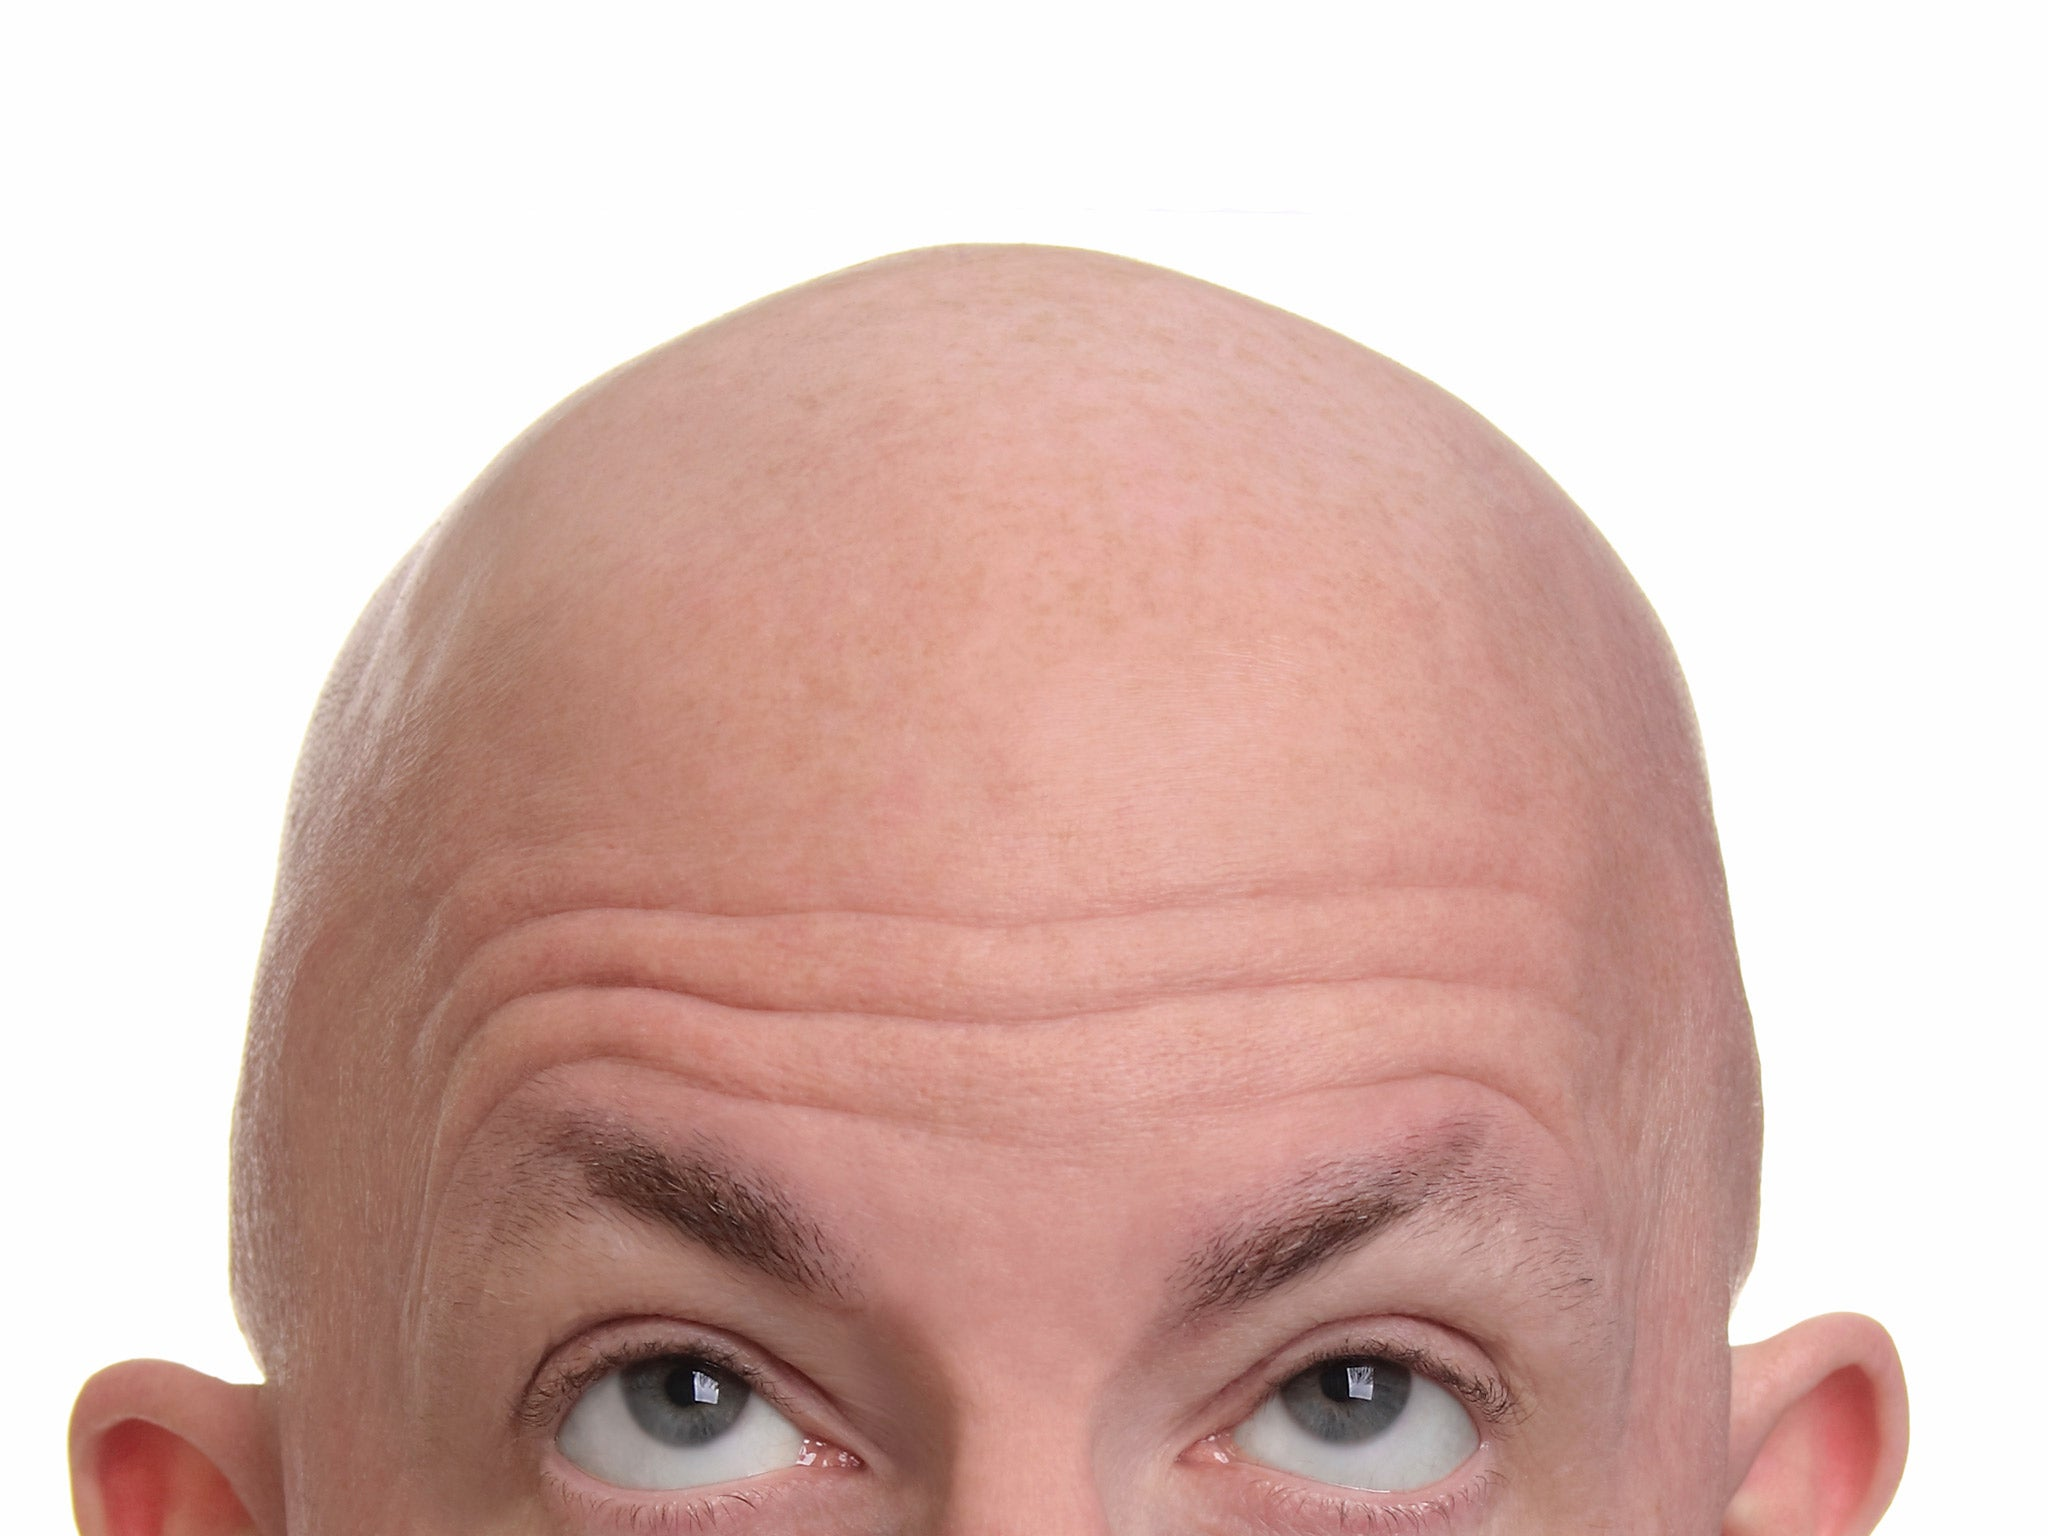 Bald Men Shared Their Dating Tips and Relationship Advice On Reddit